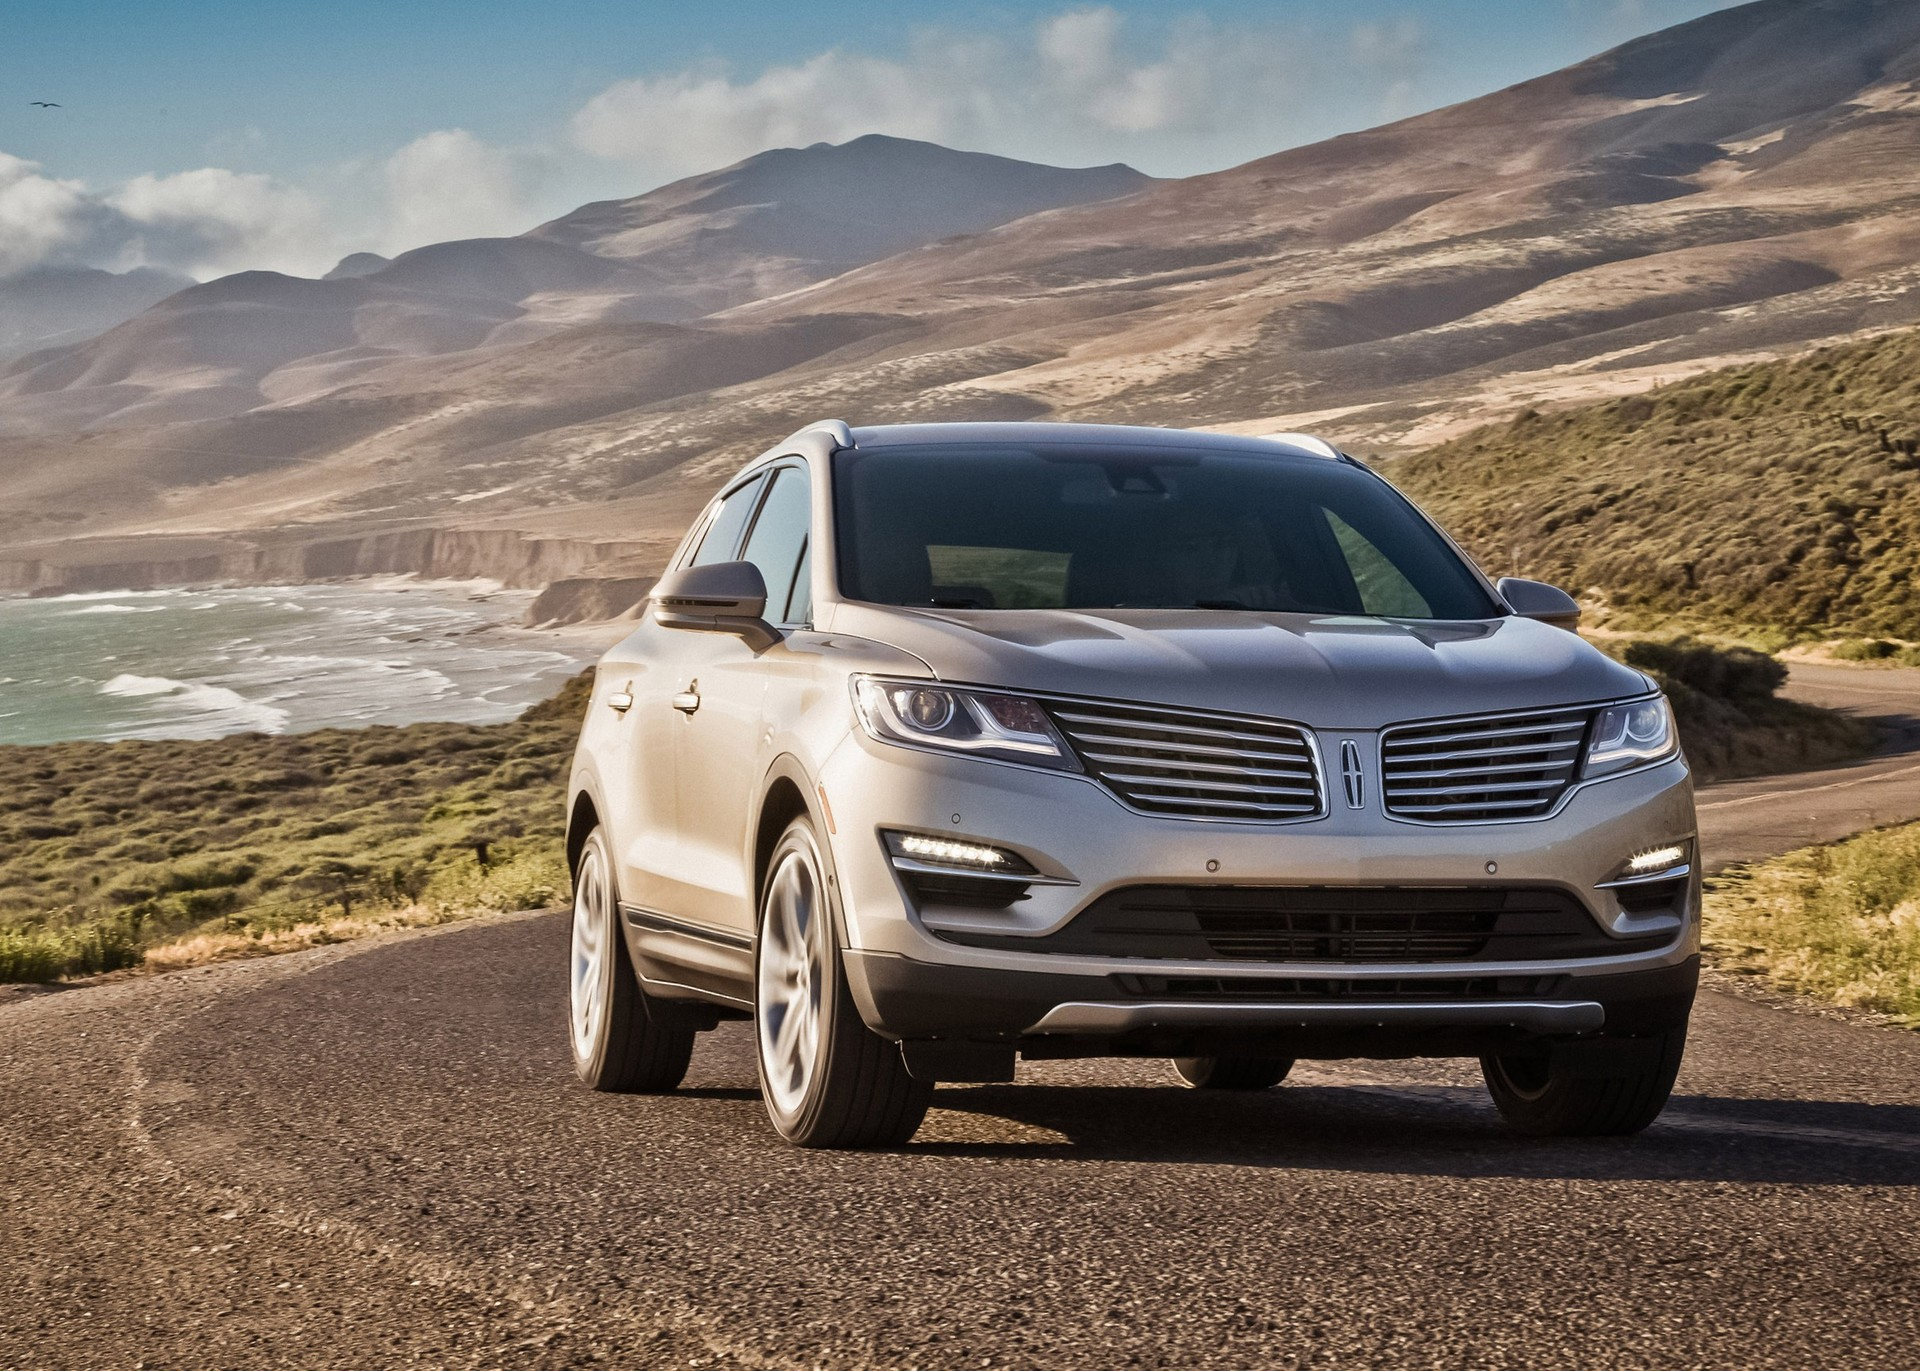 91 All New 2020 Lincoln MKS Photos